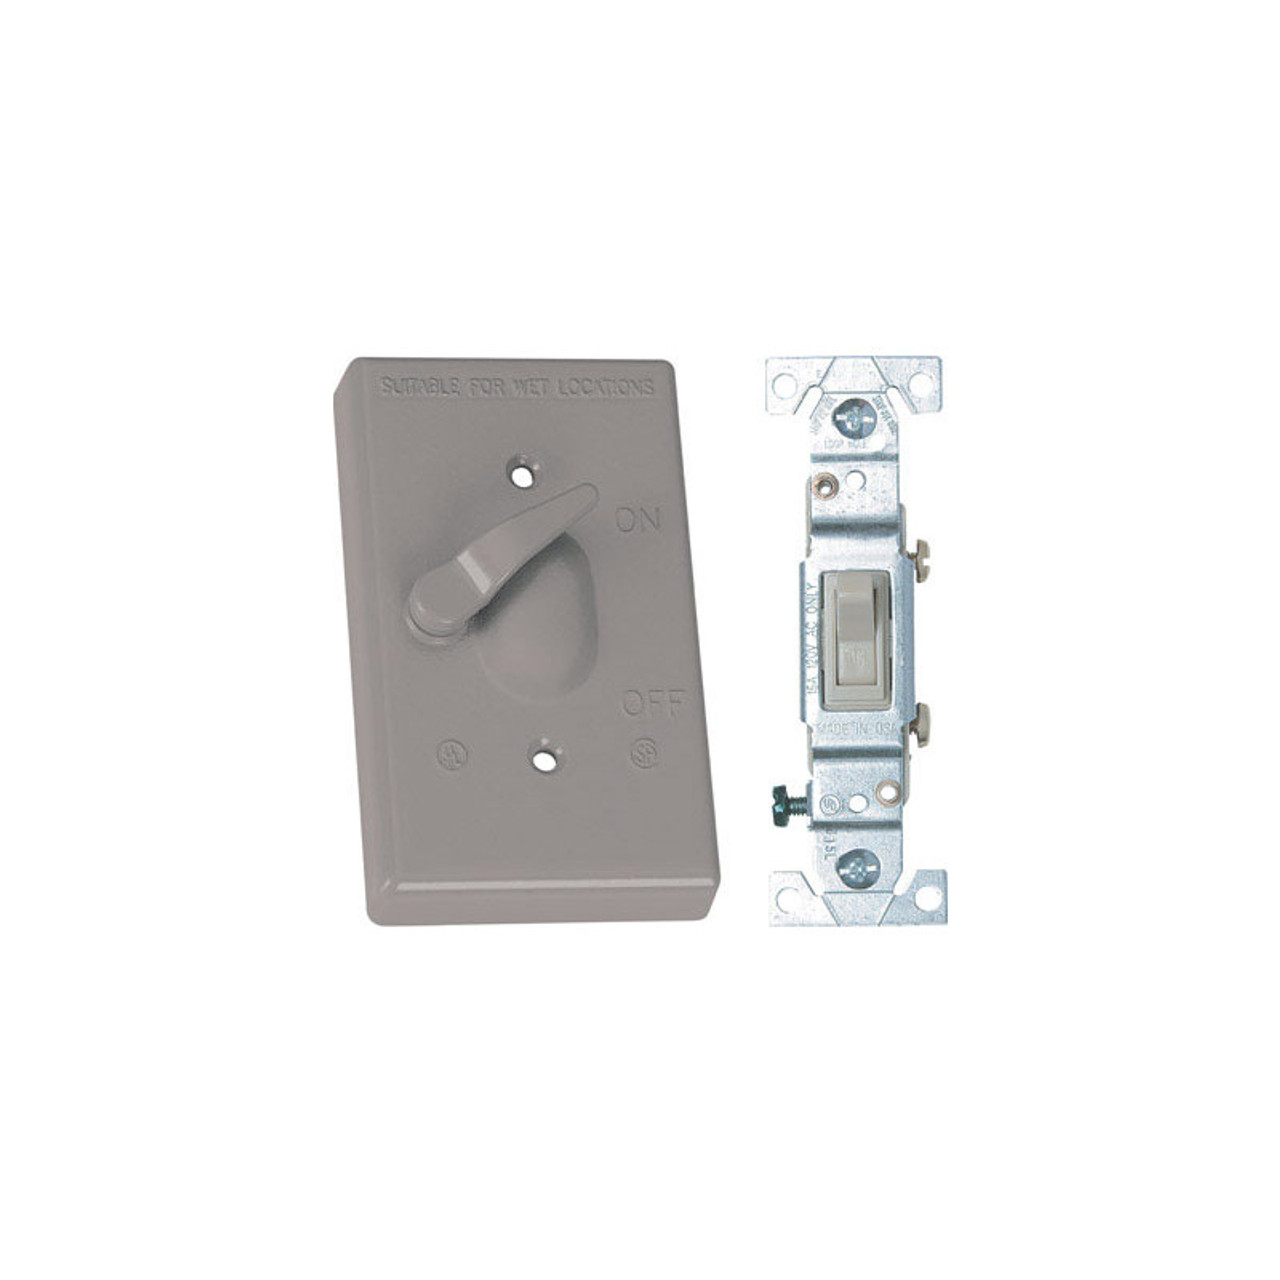 Sigma Electric 14249 1-Gang Horizontal all-weather GFCI outlet Covers Gray 3